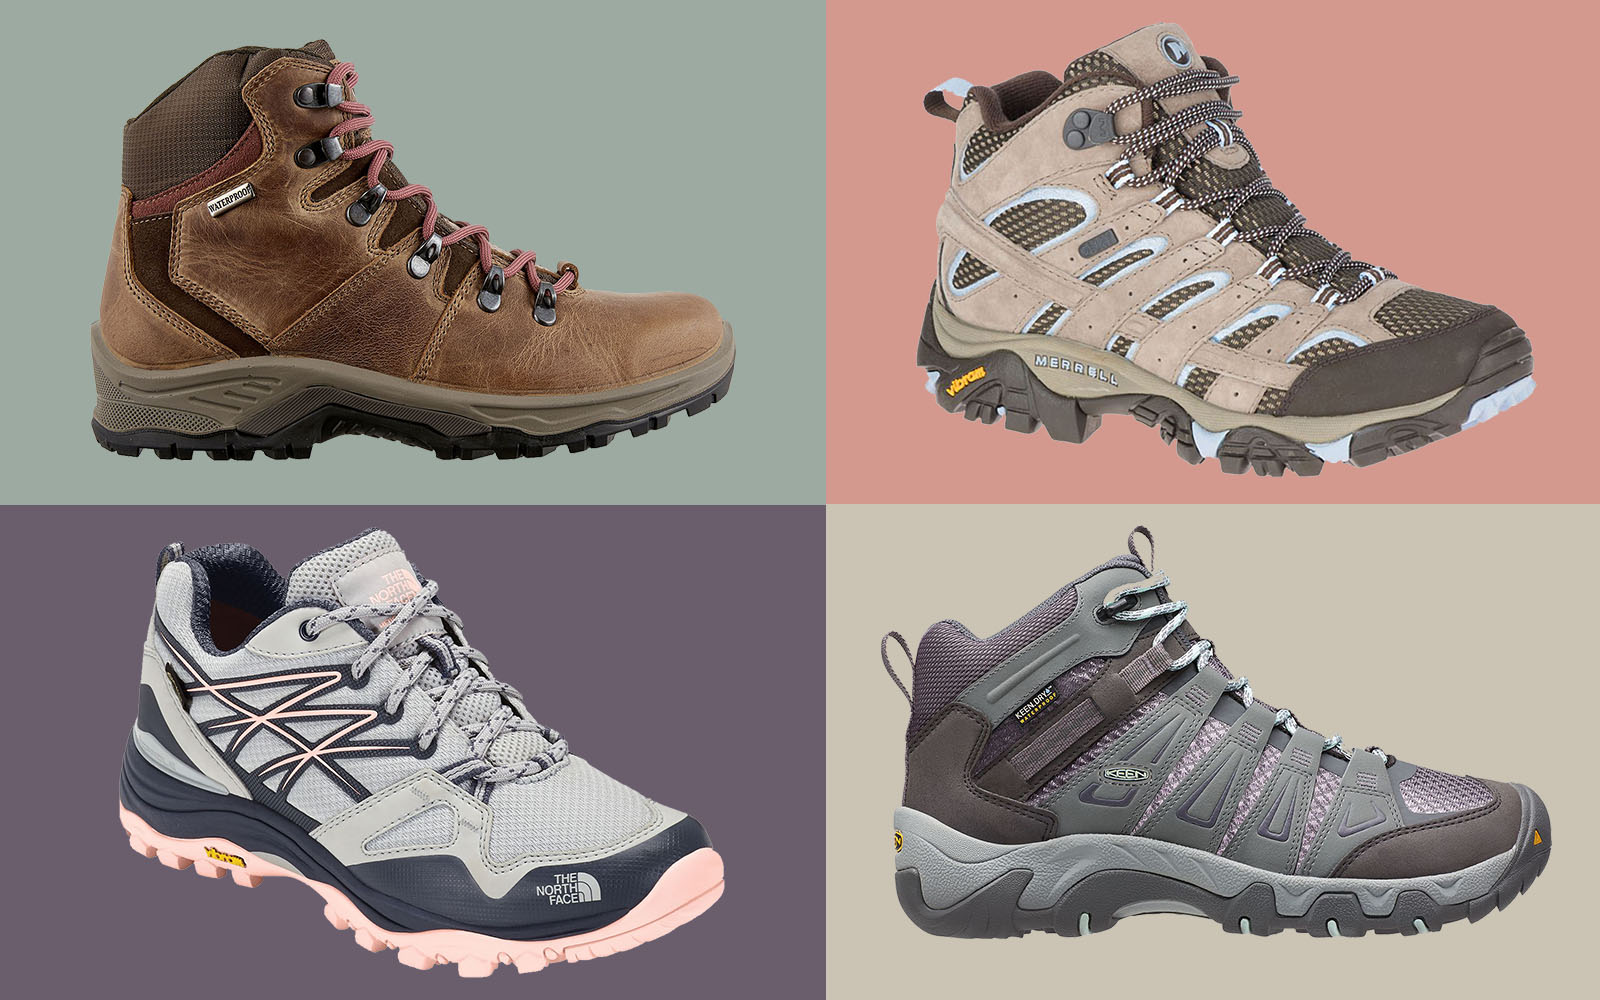 11 Cute Hiking Boots to Take You From Trail to Town | Travel